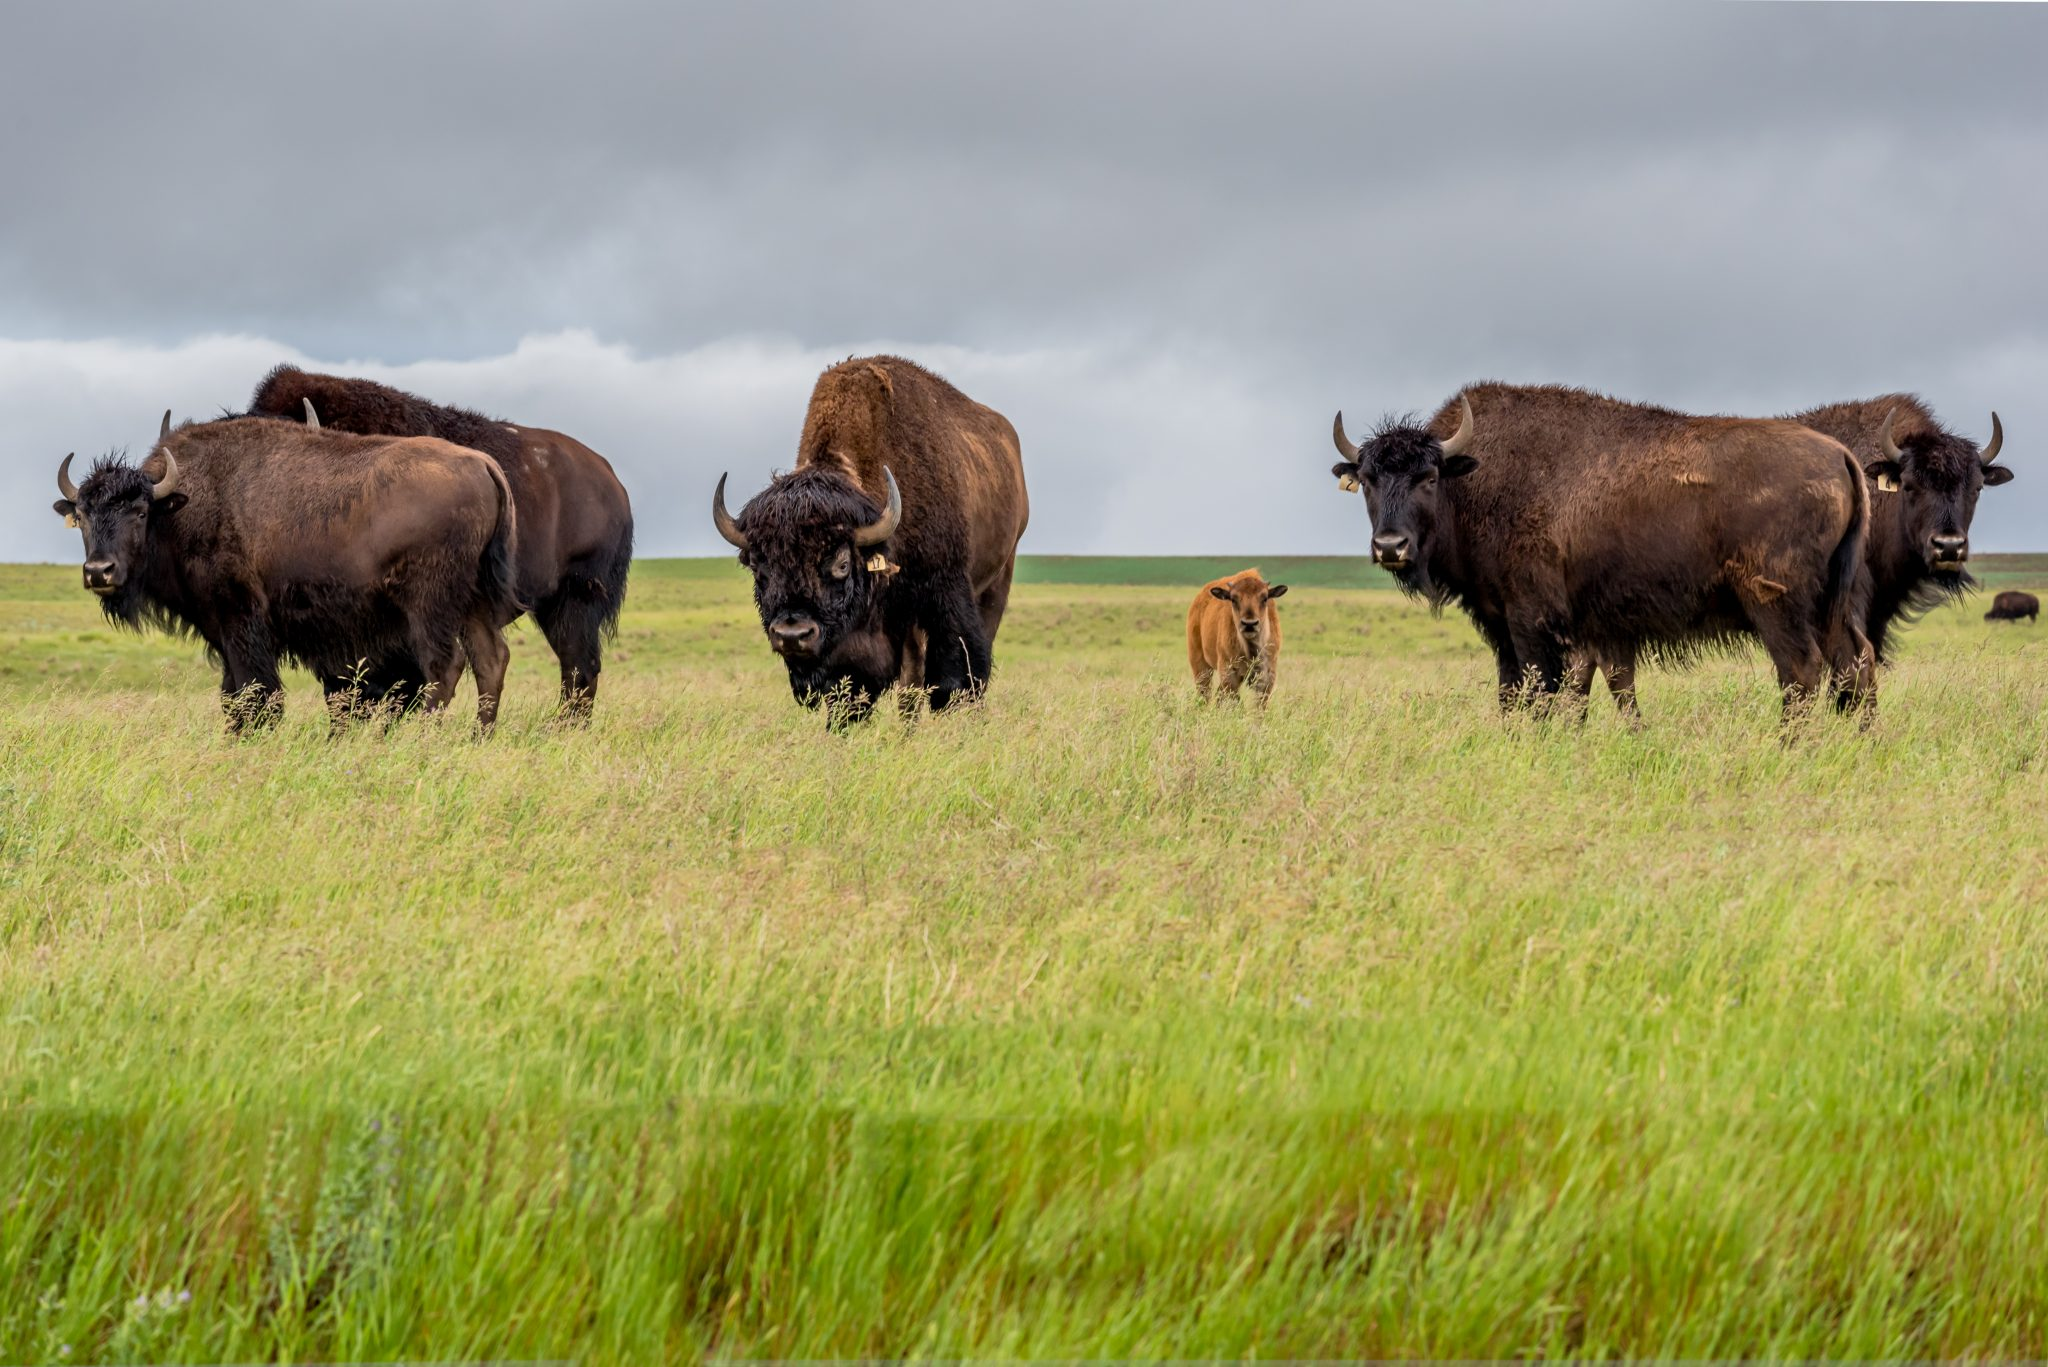 Grand Canyon National Park Opens Bison Hunting